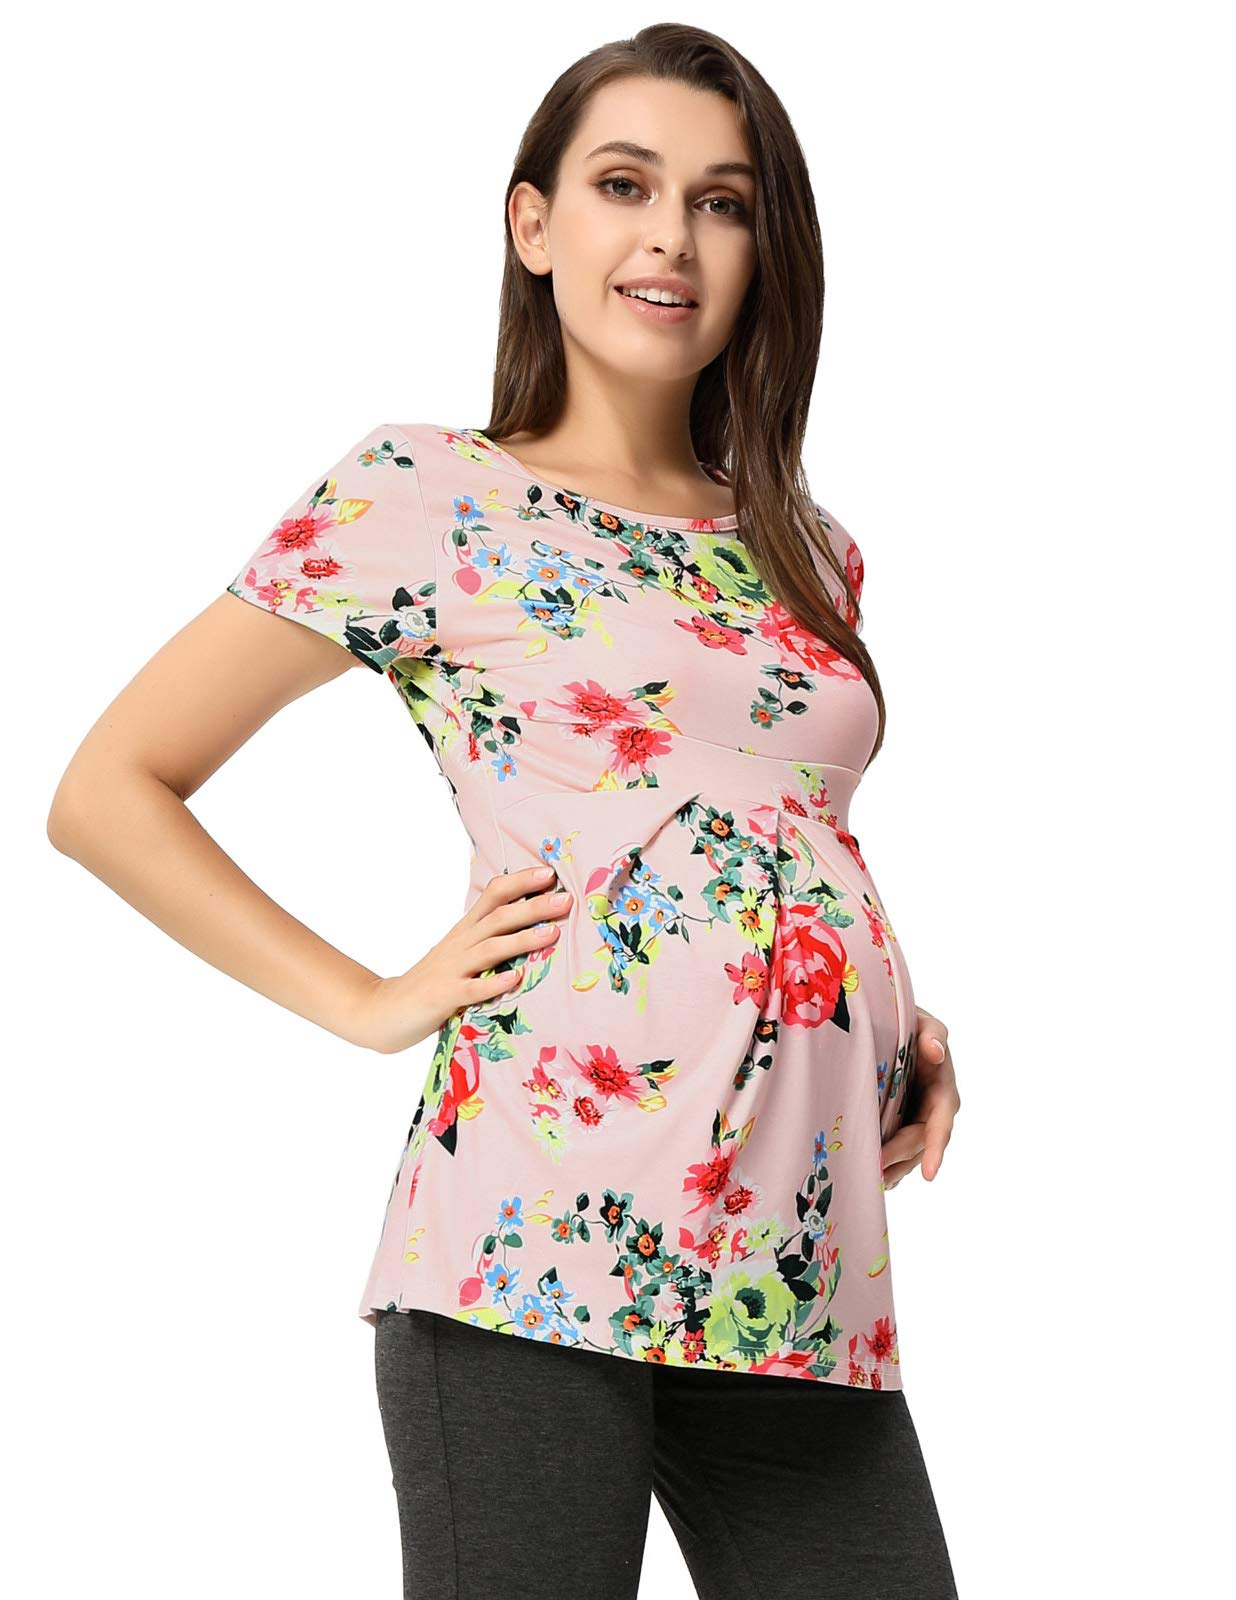 GRACE KARIN Maternity Front Pleated Ultra Soft T-Shirt Tops CL10721-1 M